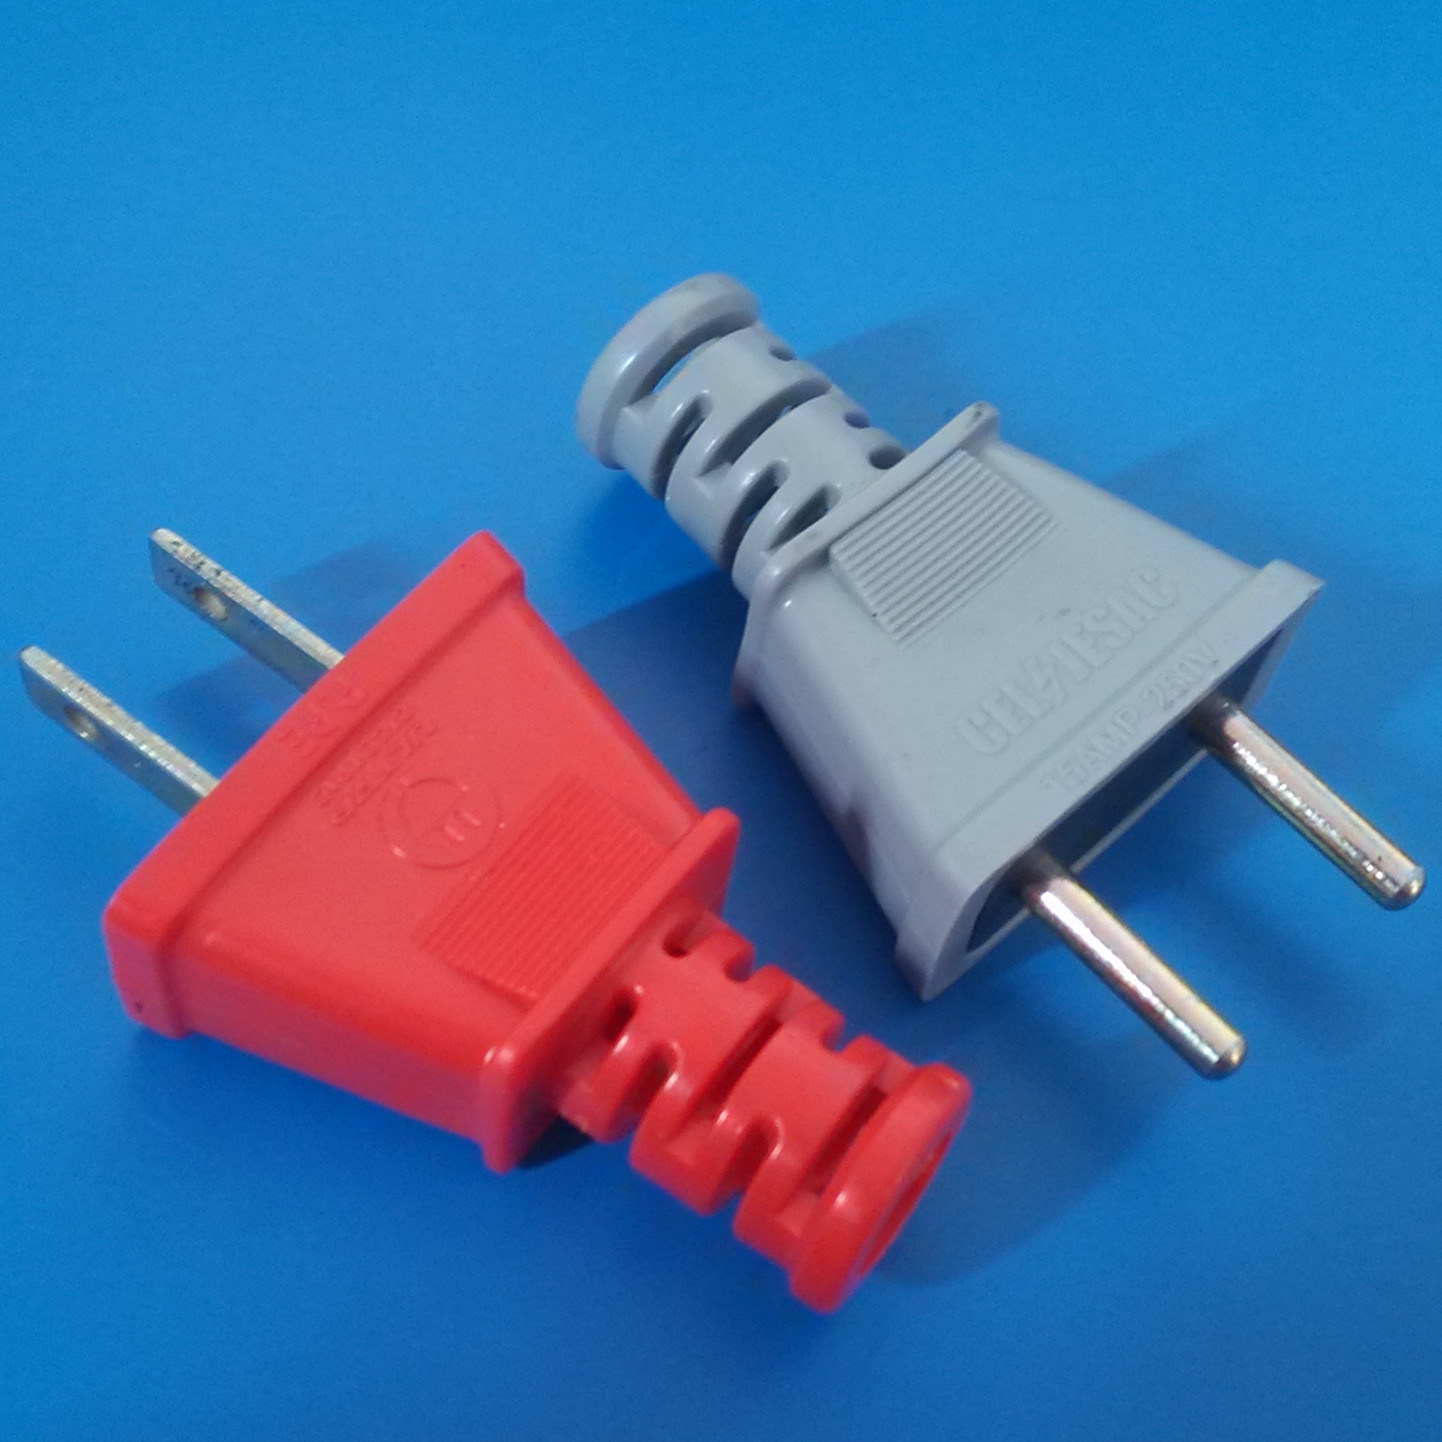 China Outlet Wire Plug Manufacturers Suppliers Pin Saa Australia Power H03vvf Cable Manufacturer